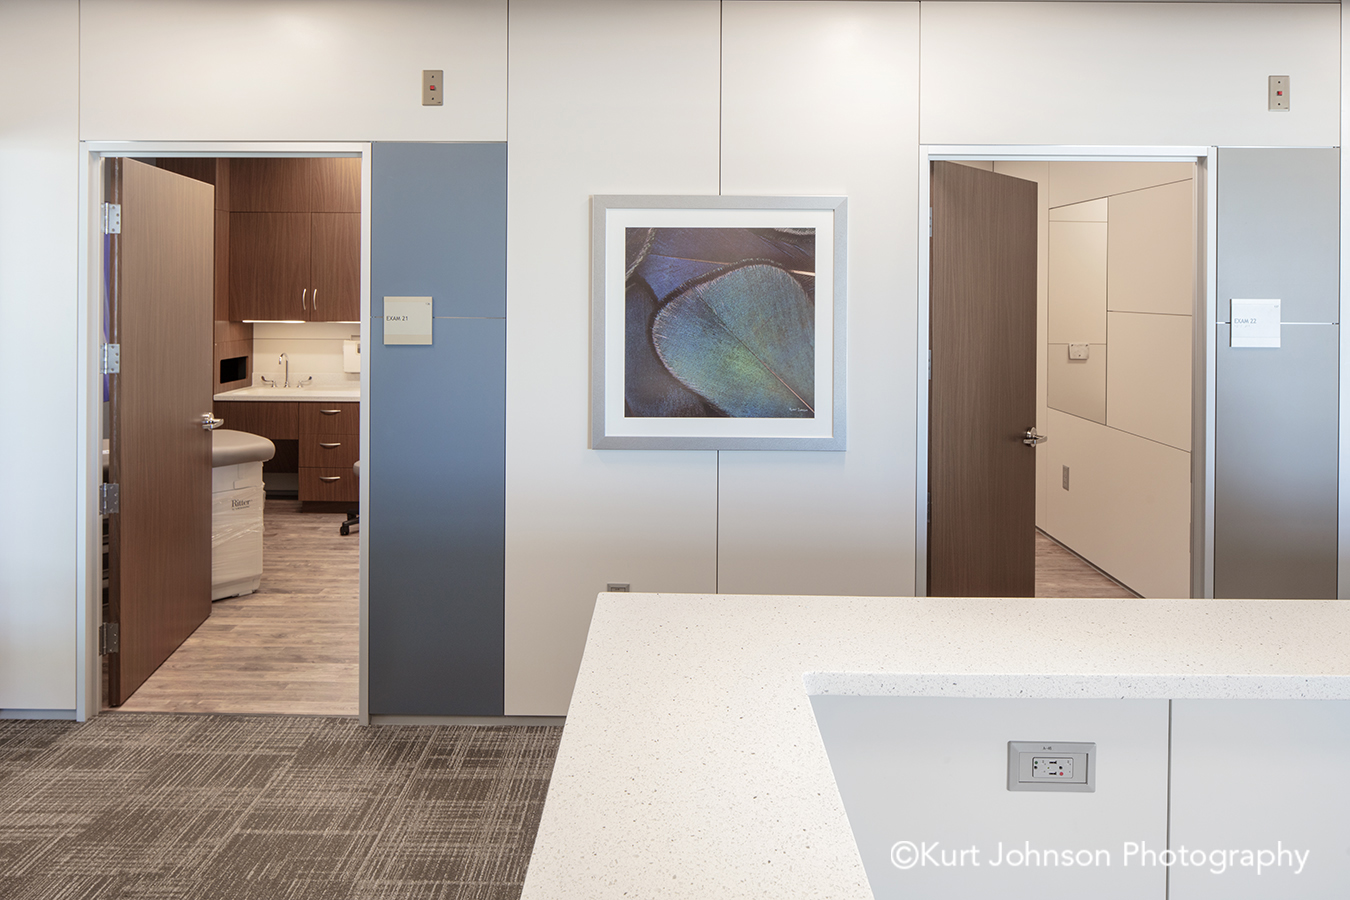 silver frame framed art install installation wall feather texture hall hallway corridor methodist physicians clinic elkhorn nebraska best care positive distraction patient outcomes